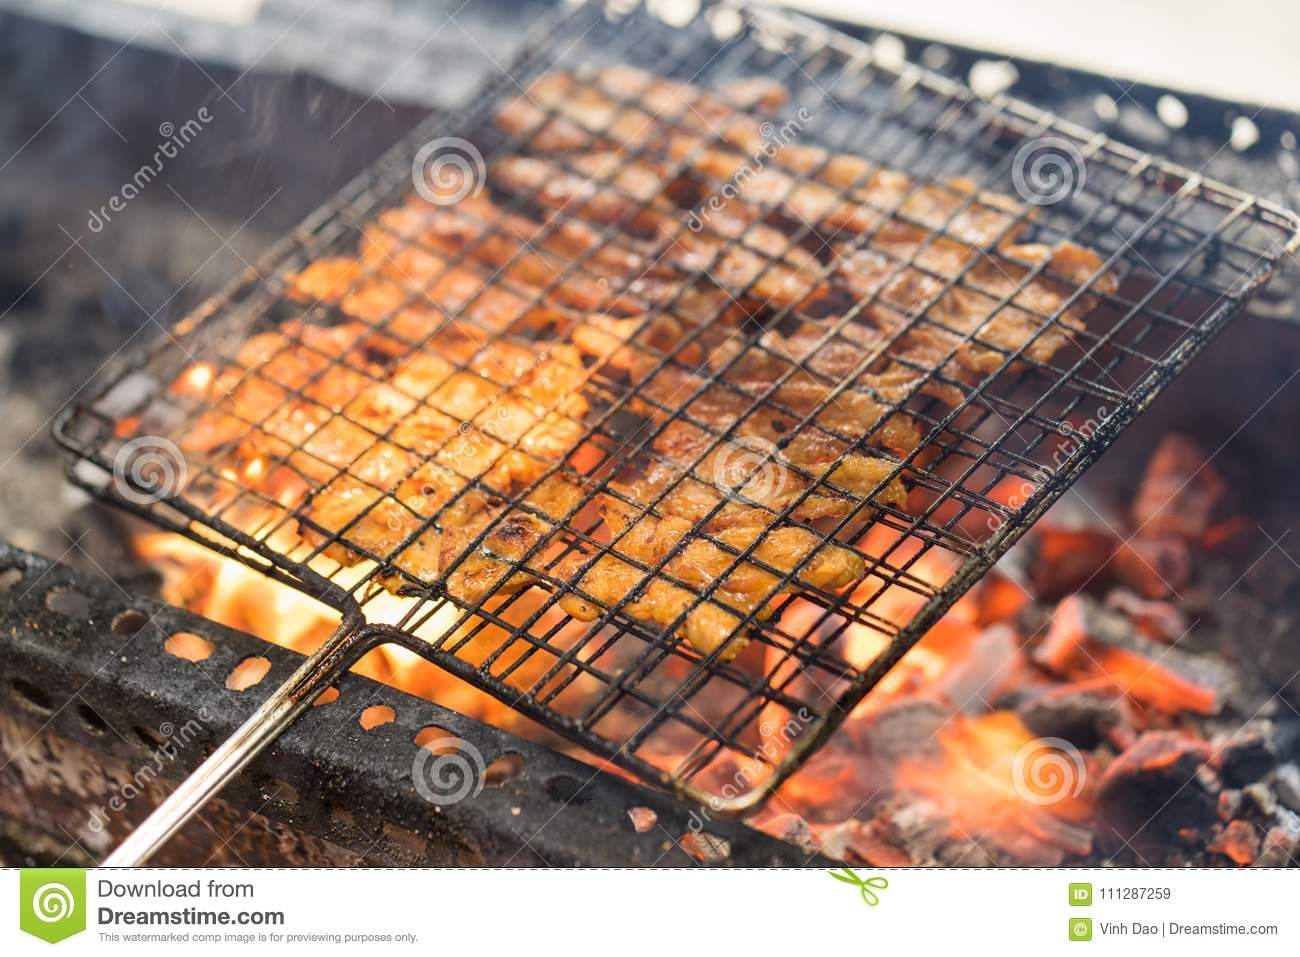 Barbecue meat cooking on fire - the ingredient of bun cha the famous Vietnamese noodle soup with bbq meat, spring roll, vermicelli